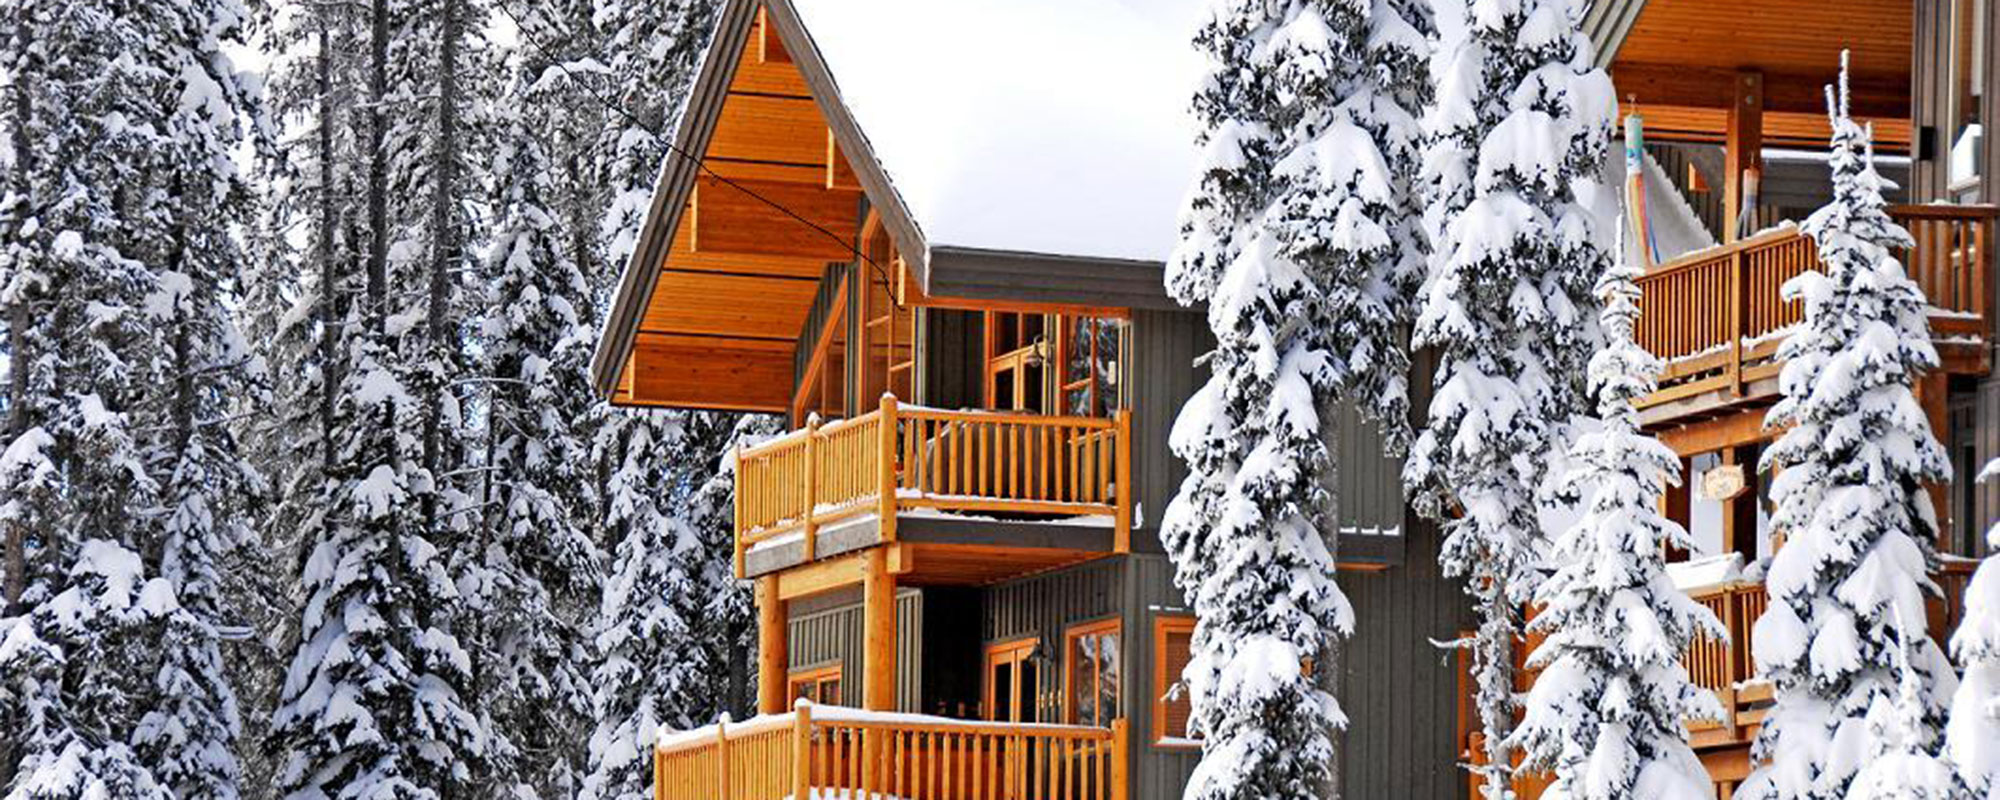 Woodcutter cabins